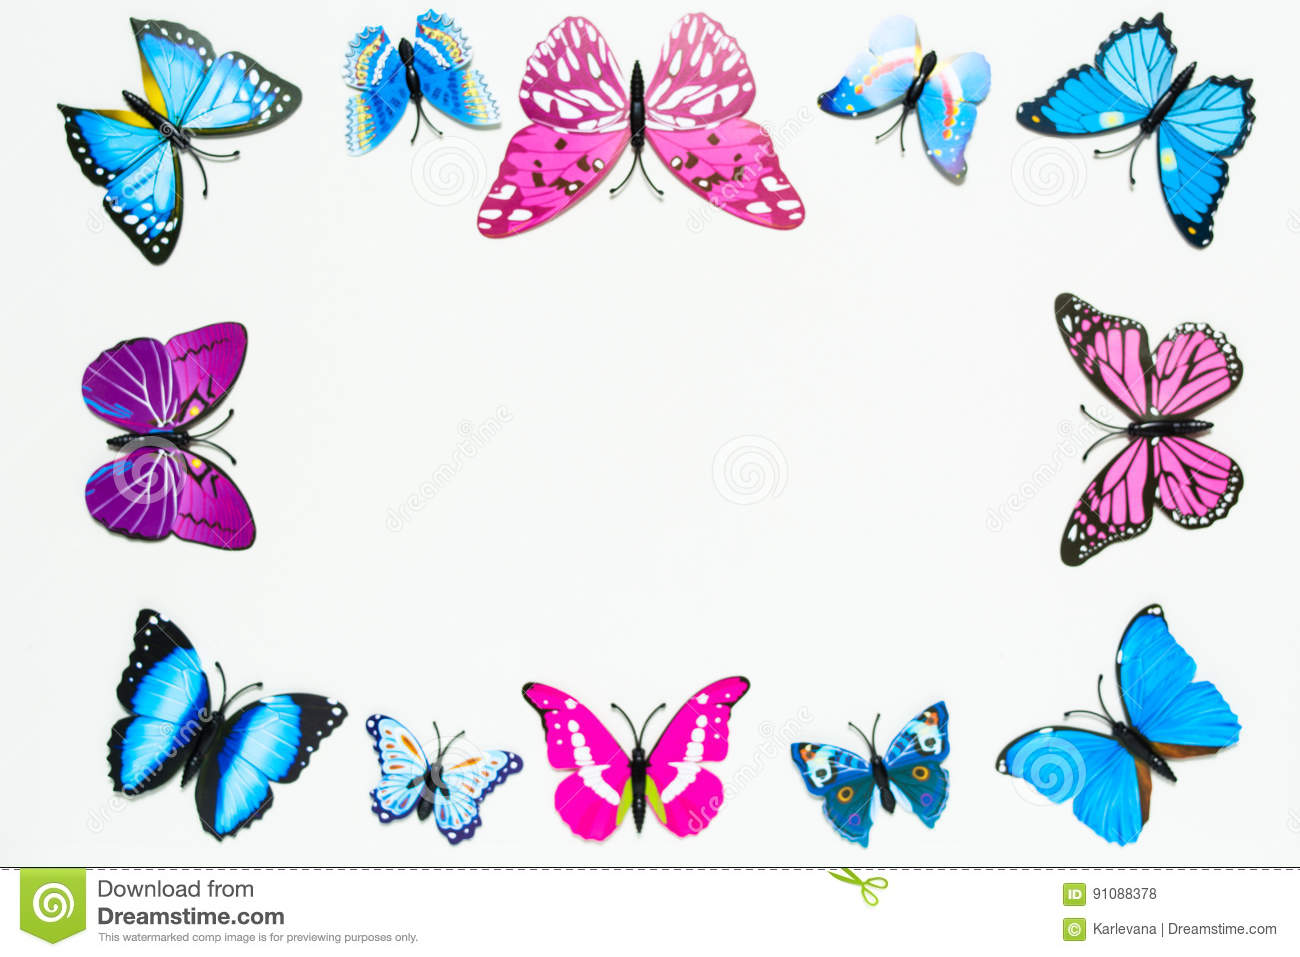 Butterfly frame decoration on white background